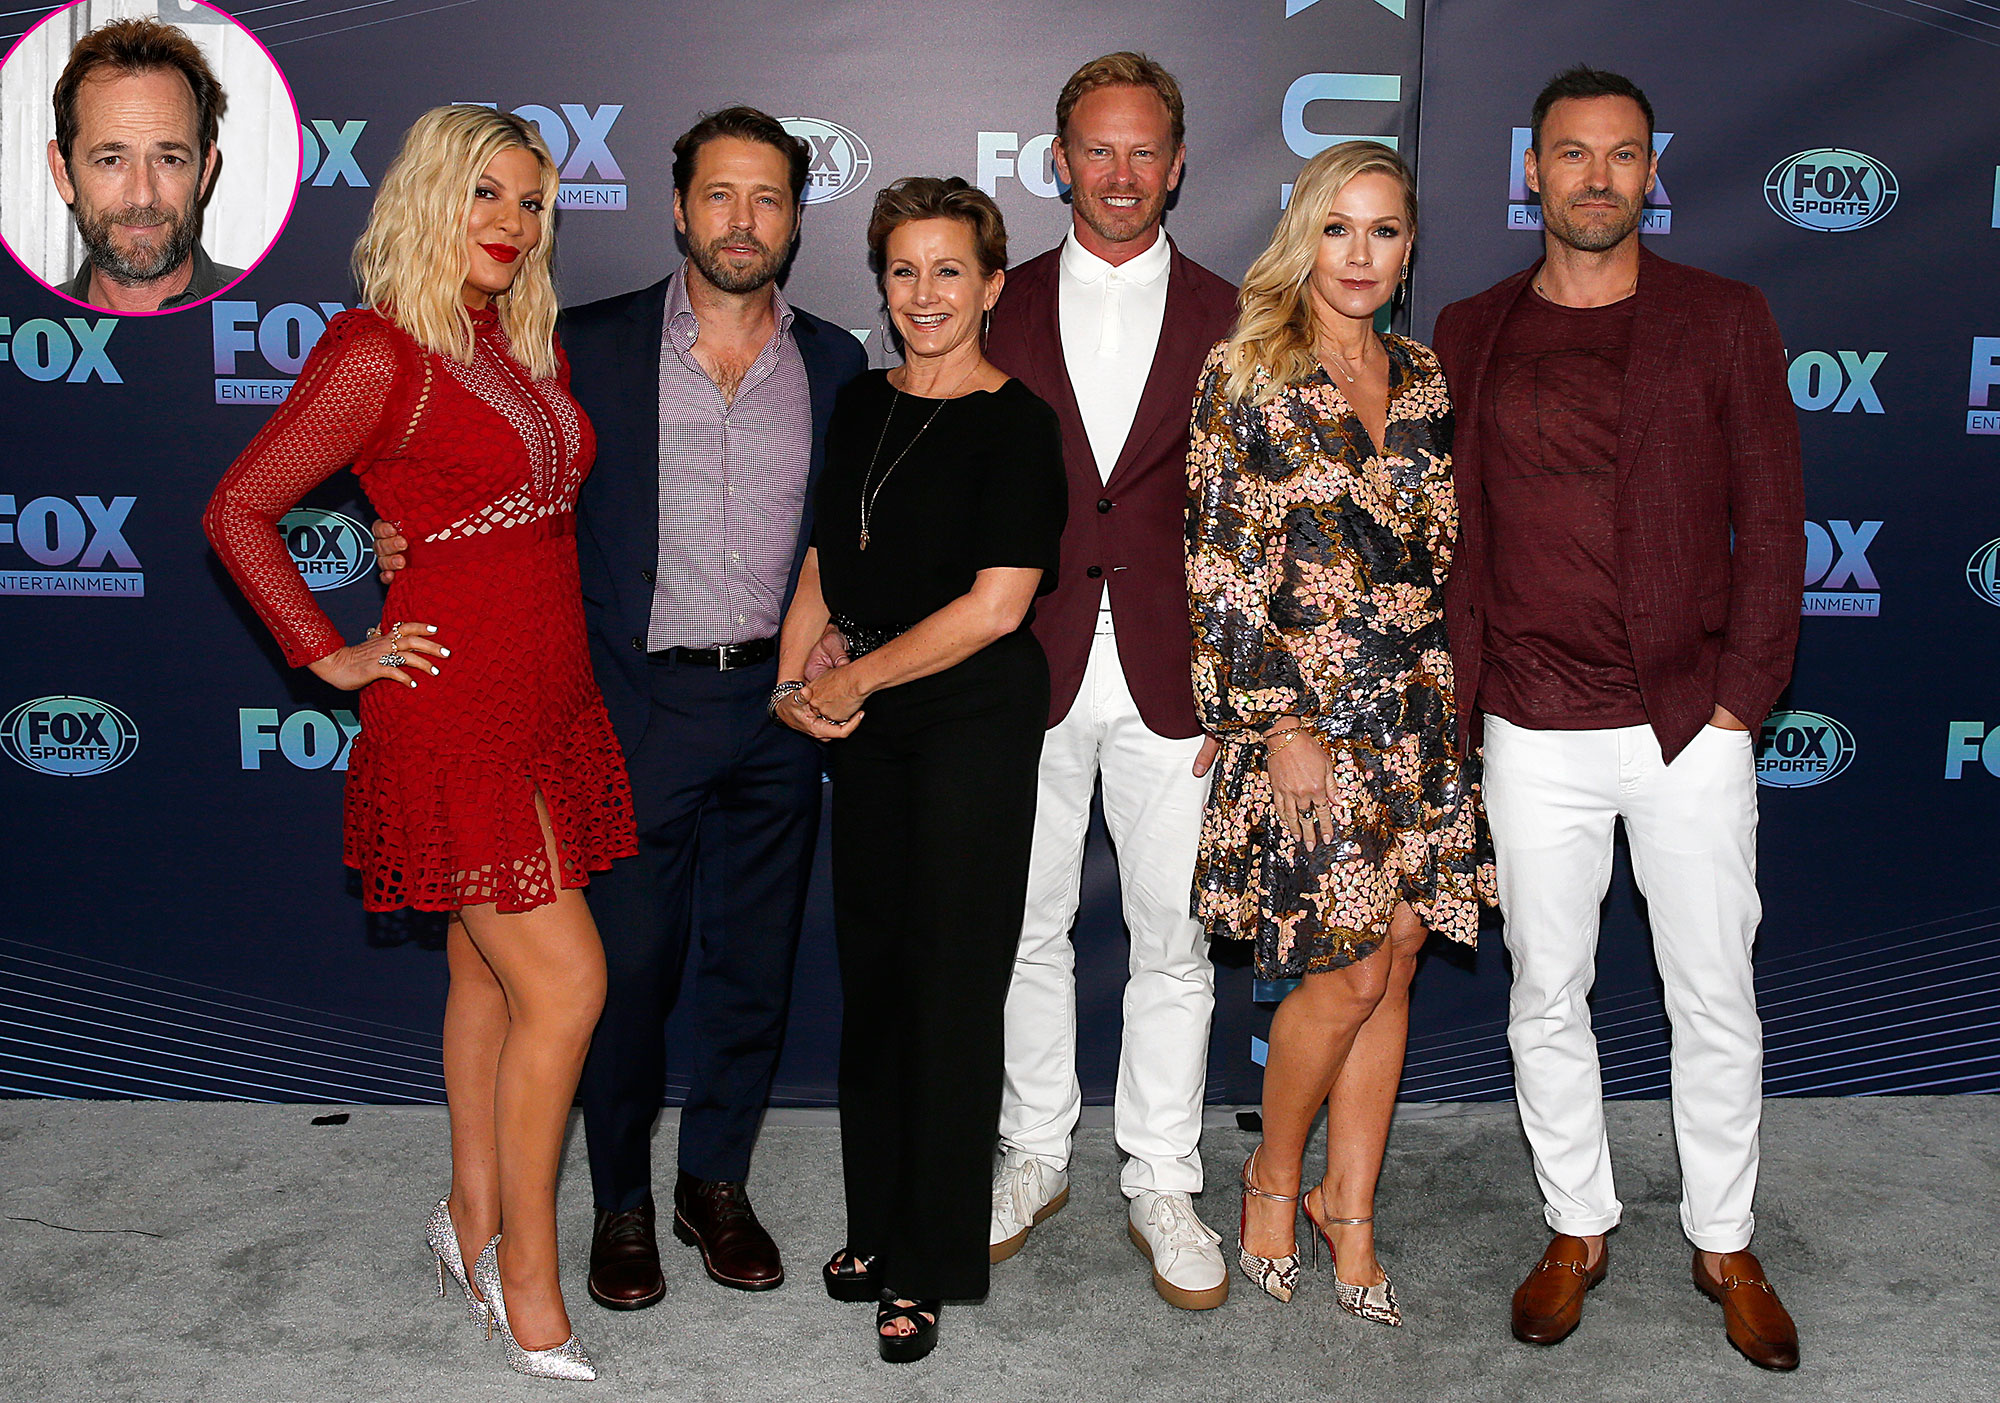 BH90210 Cast and Luke Perry - (L-R) Tori Spelling, Jason Priestley, Gabrielle Carteris, Ian Ziering, Jennie Garth and Brian Austin Green attend the 2019 FOX Upfront at Wollman Rink, Central Park on May 13, 2019 in New York City.